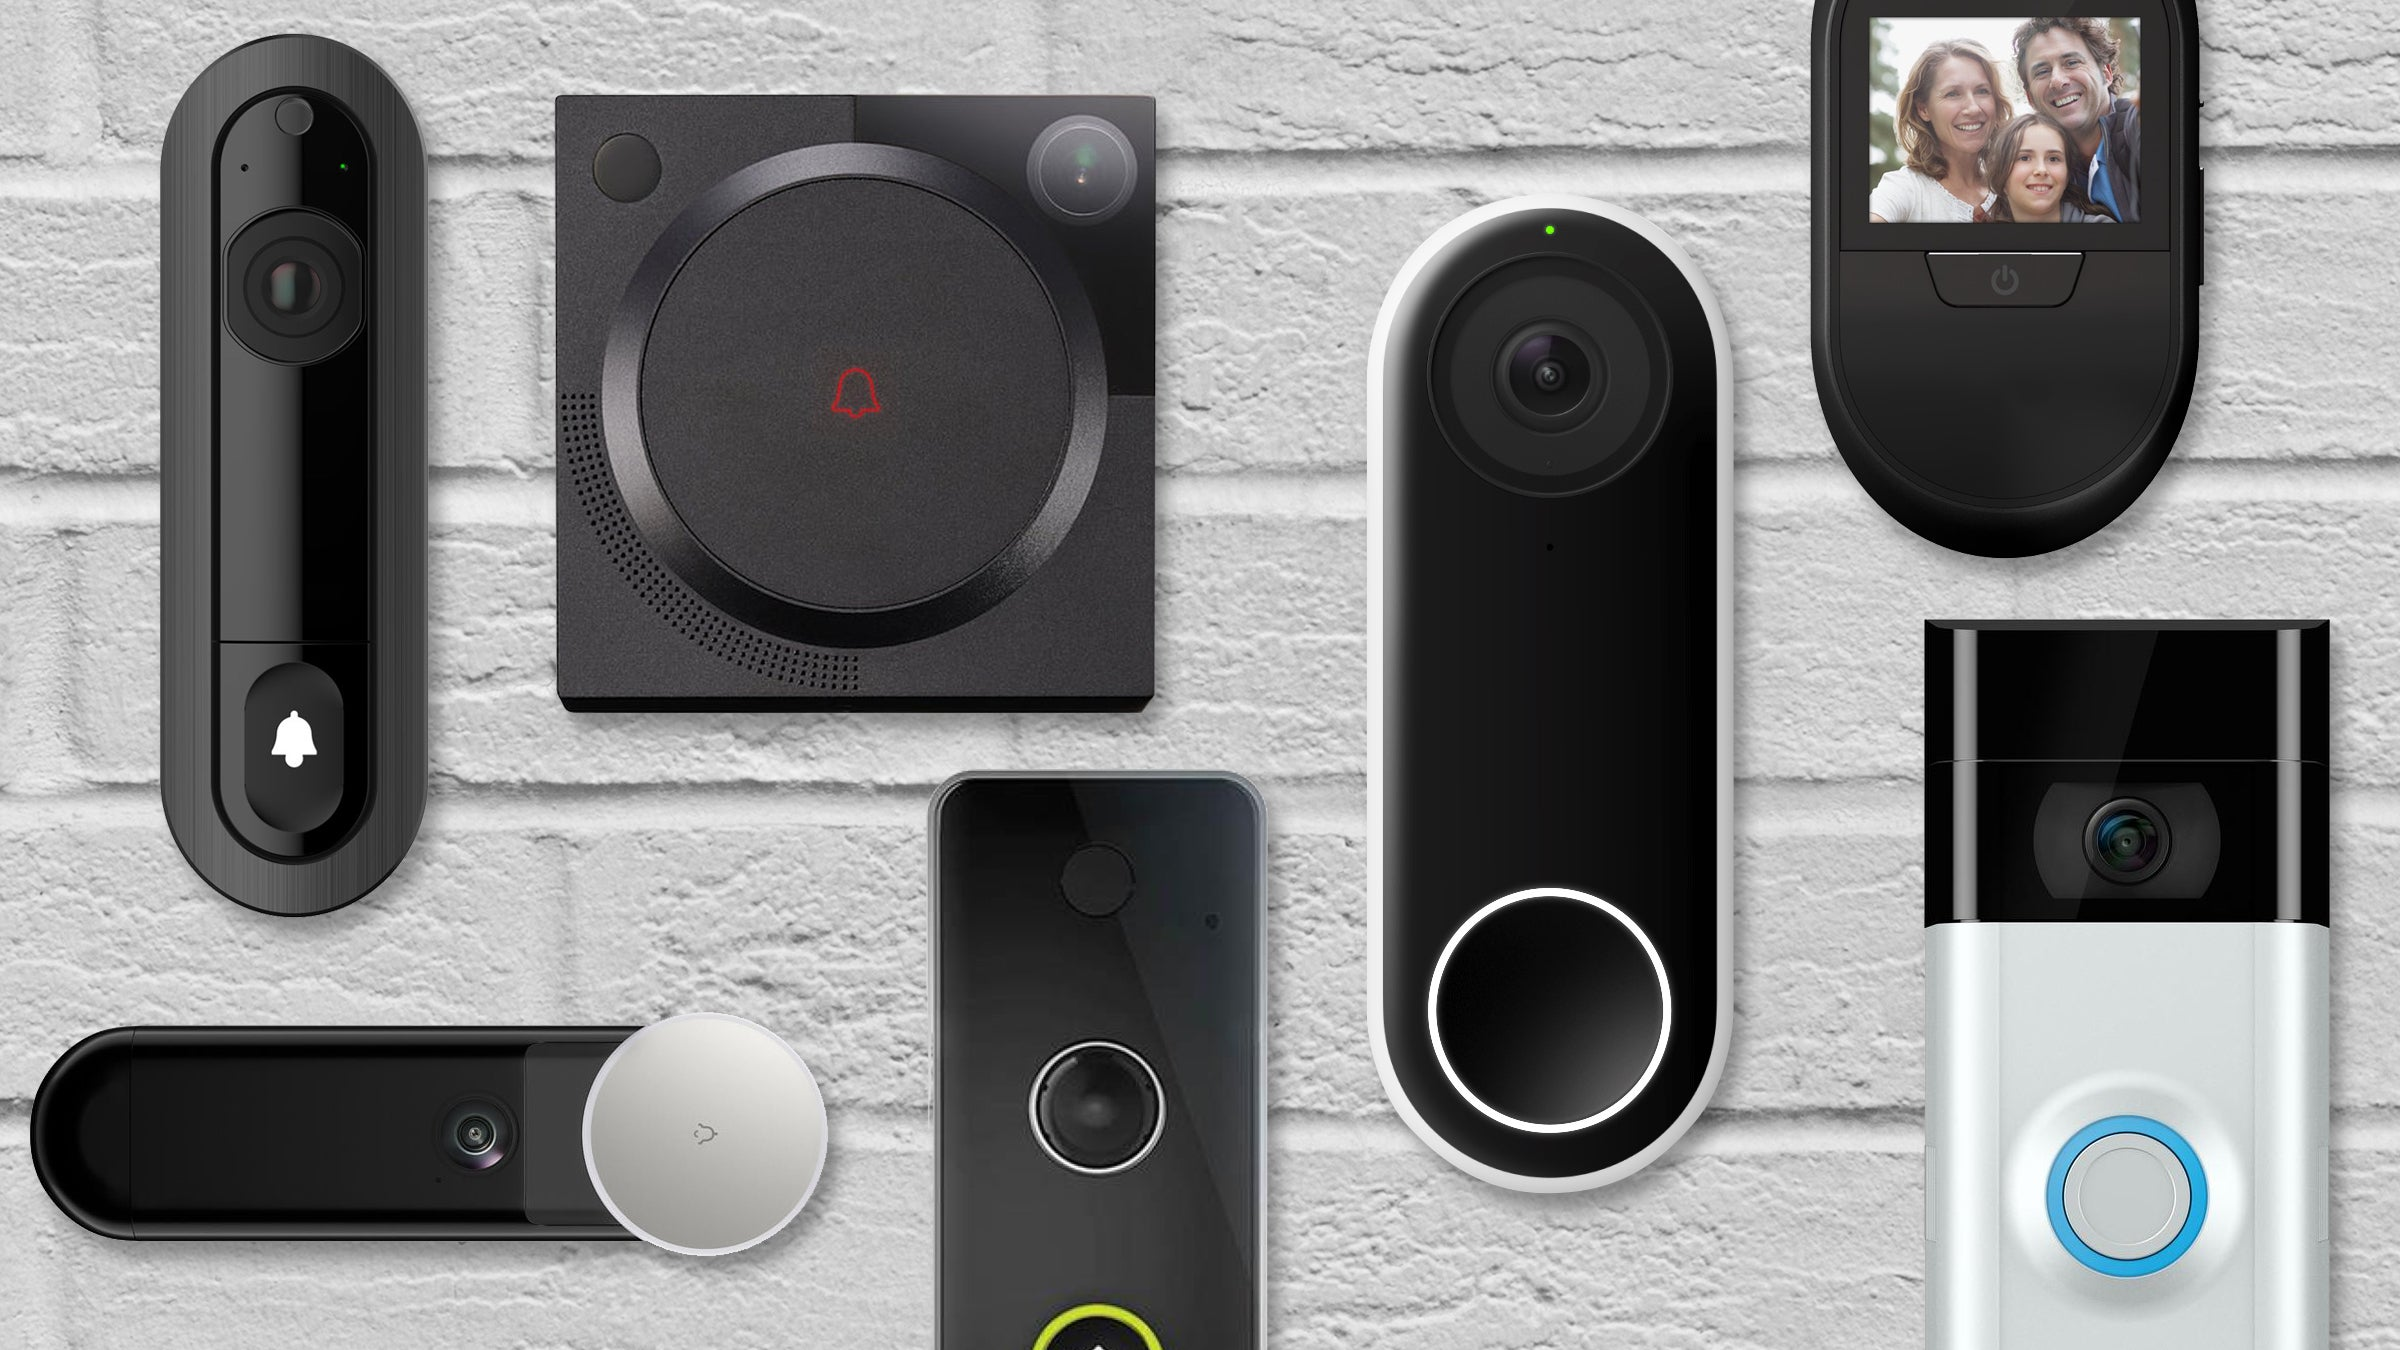 Best video doorbells of 2019: Reviews and buying advice